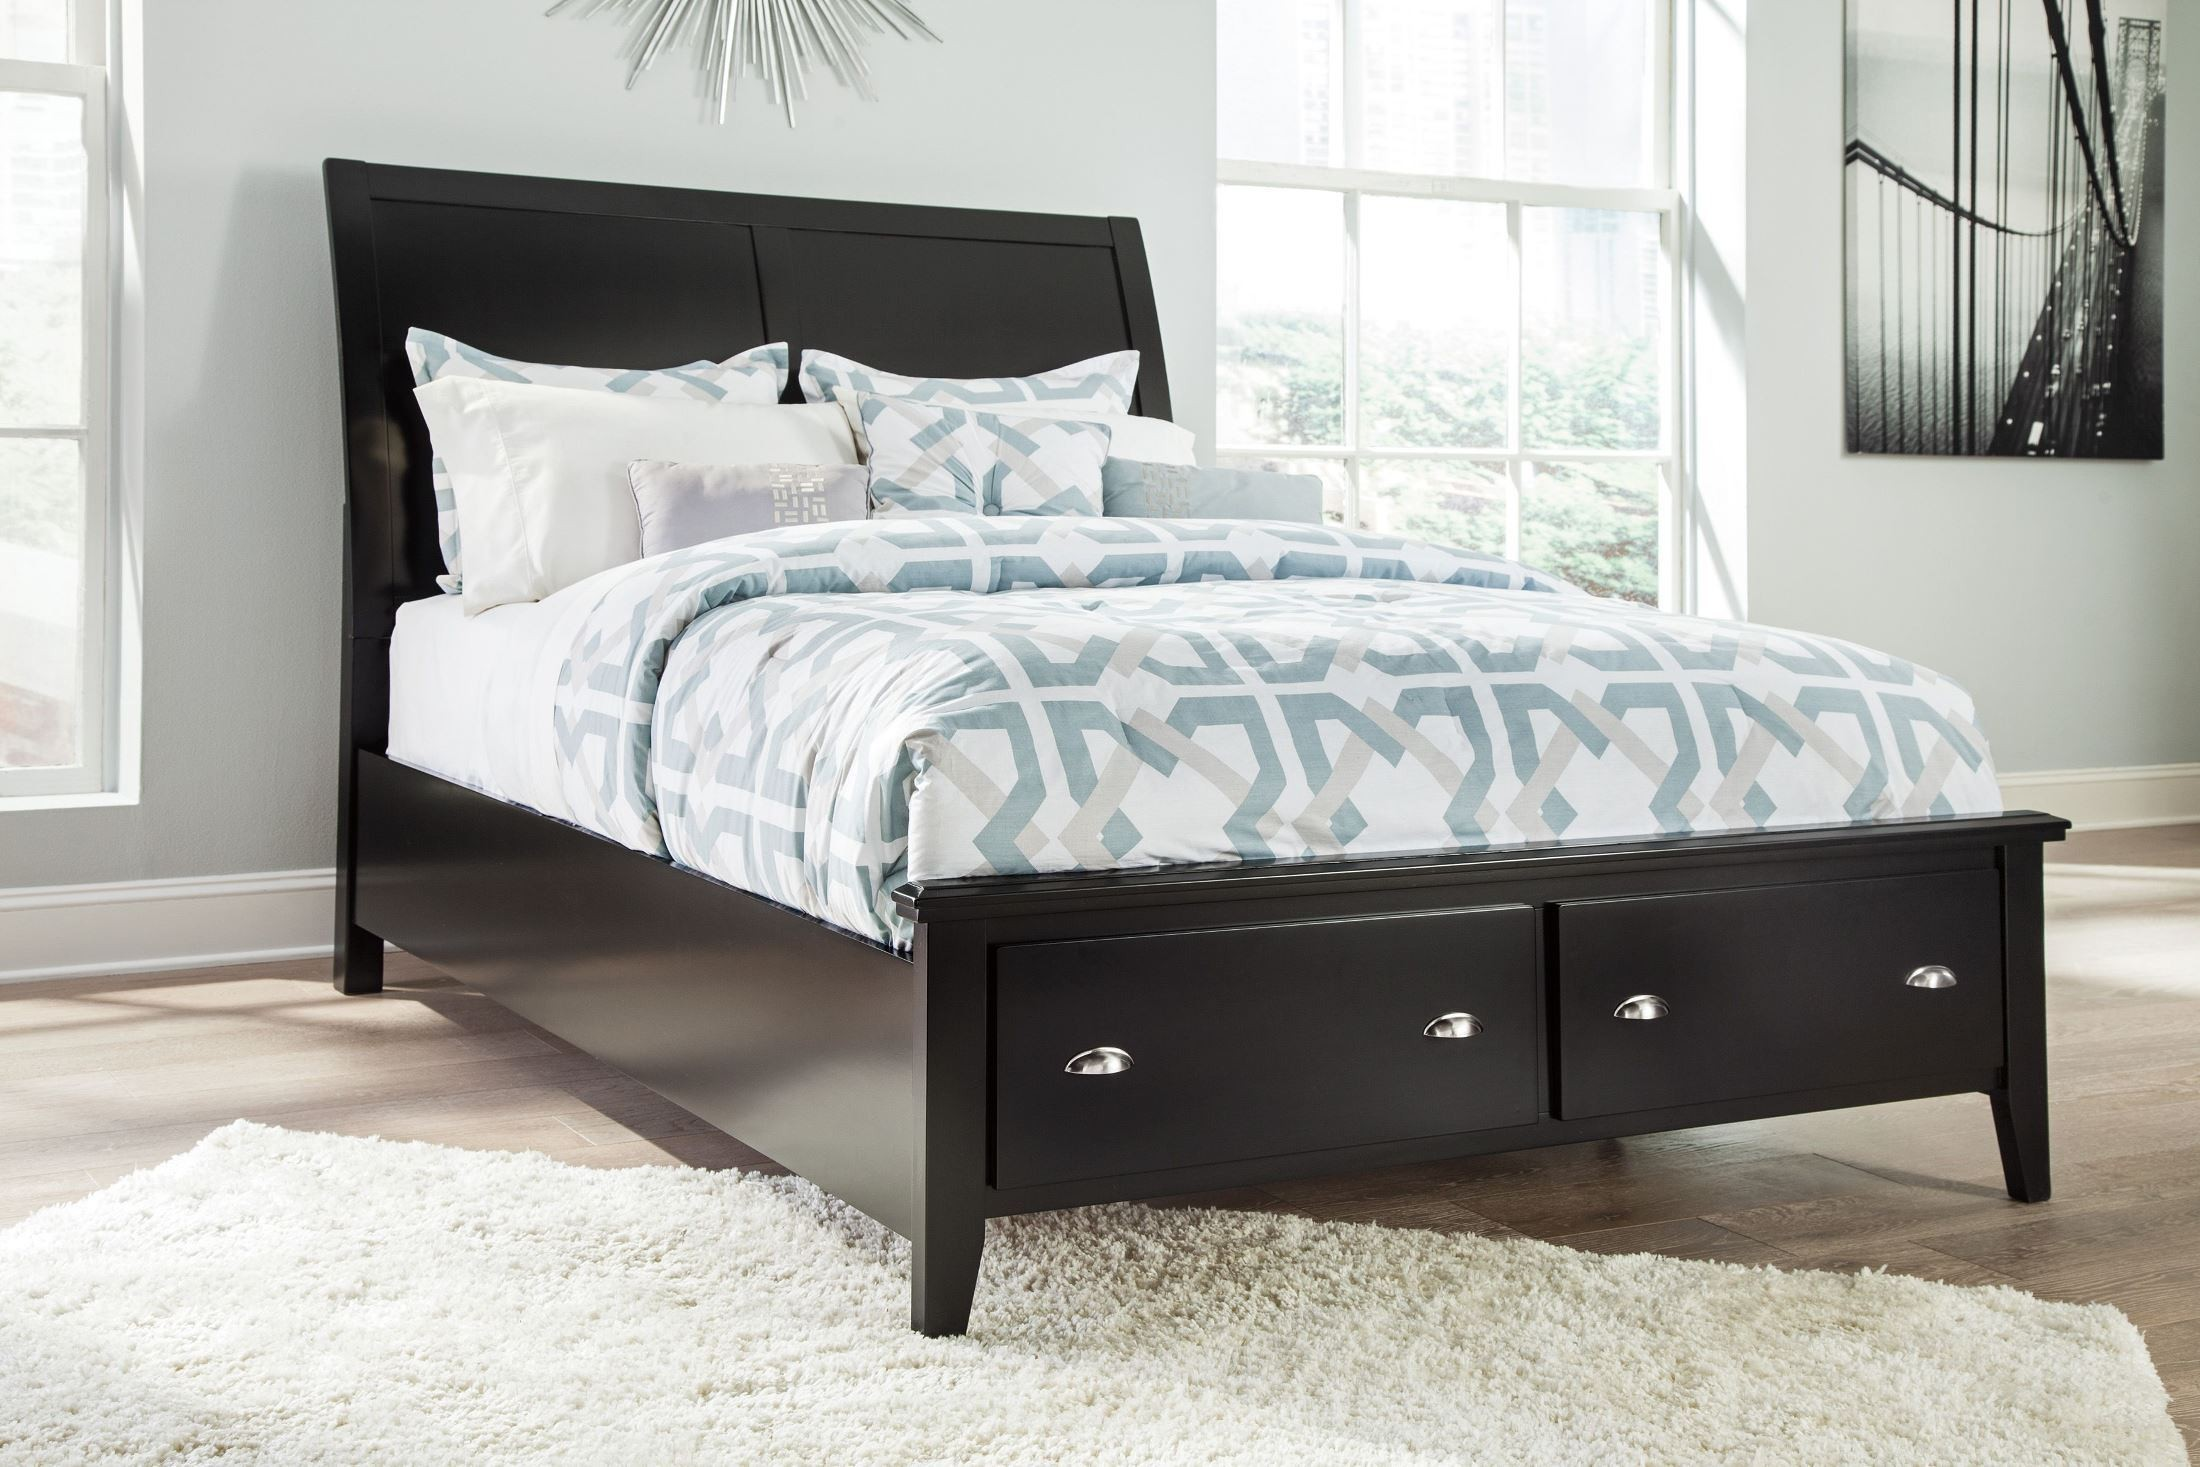 braflin black queen sleigh storage bed from ashley b591 57 54s 96s coleman furniture. Black Bedroom Furniture Sets. Home Design Ideas